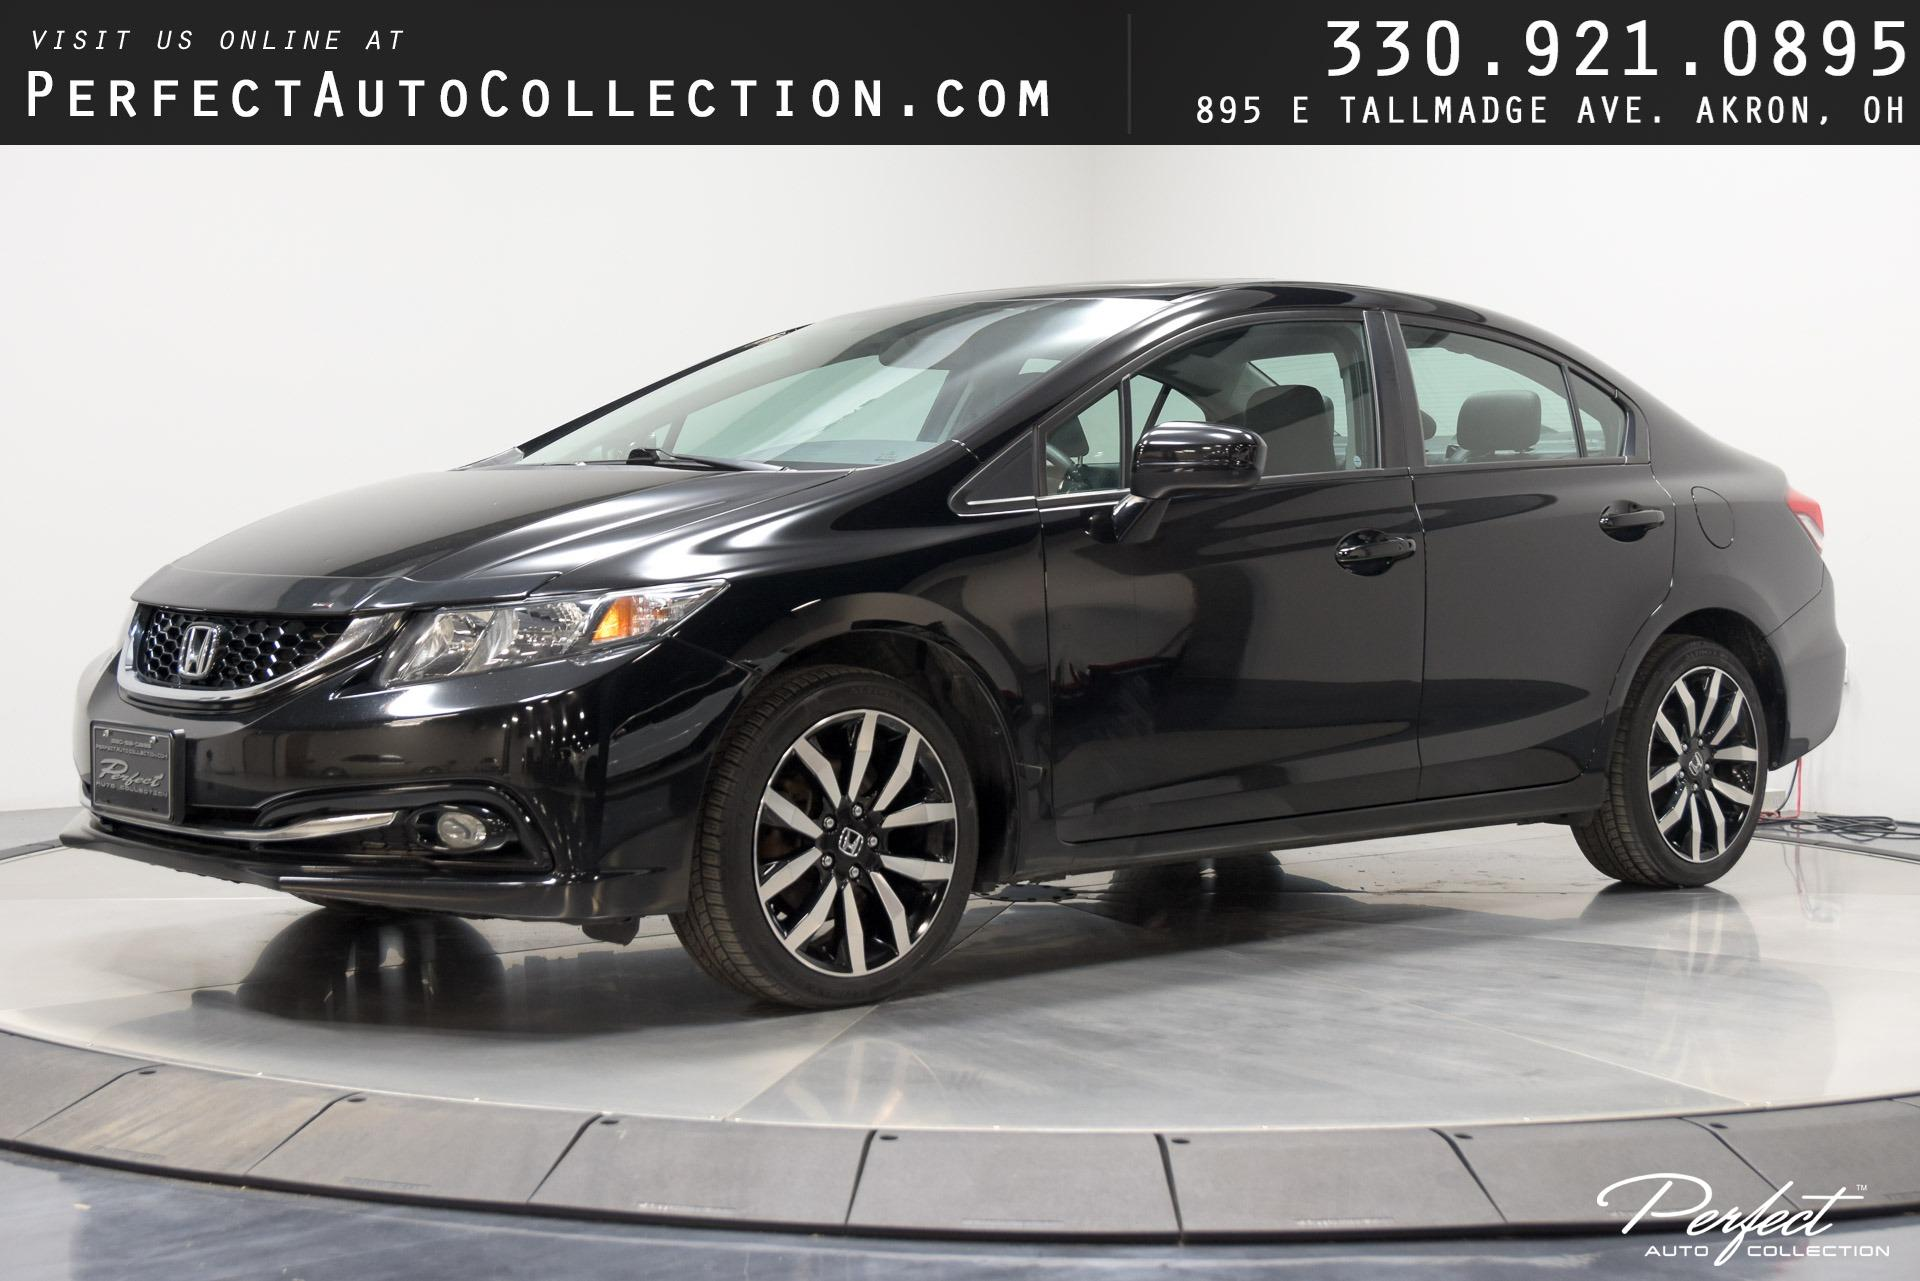 Used 2015 Honda Civic EX-L for sale $10,495 at Perfect Auto Collection in Akron OH 44310 1